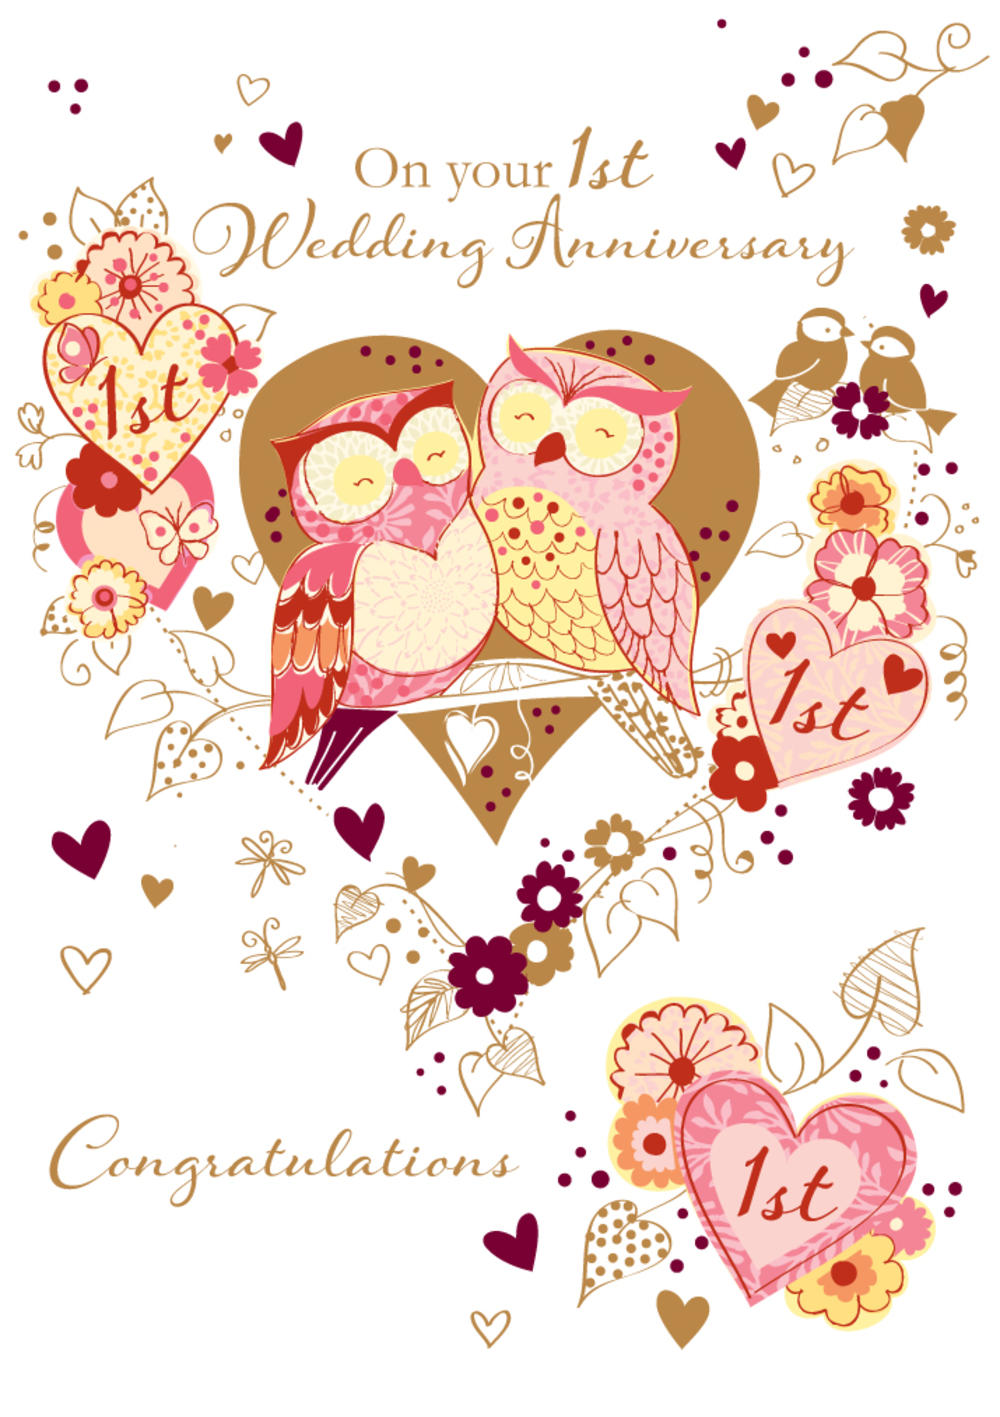 On Your 1st Wedding Anniversary Greeting Card Cards Love Kates